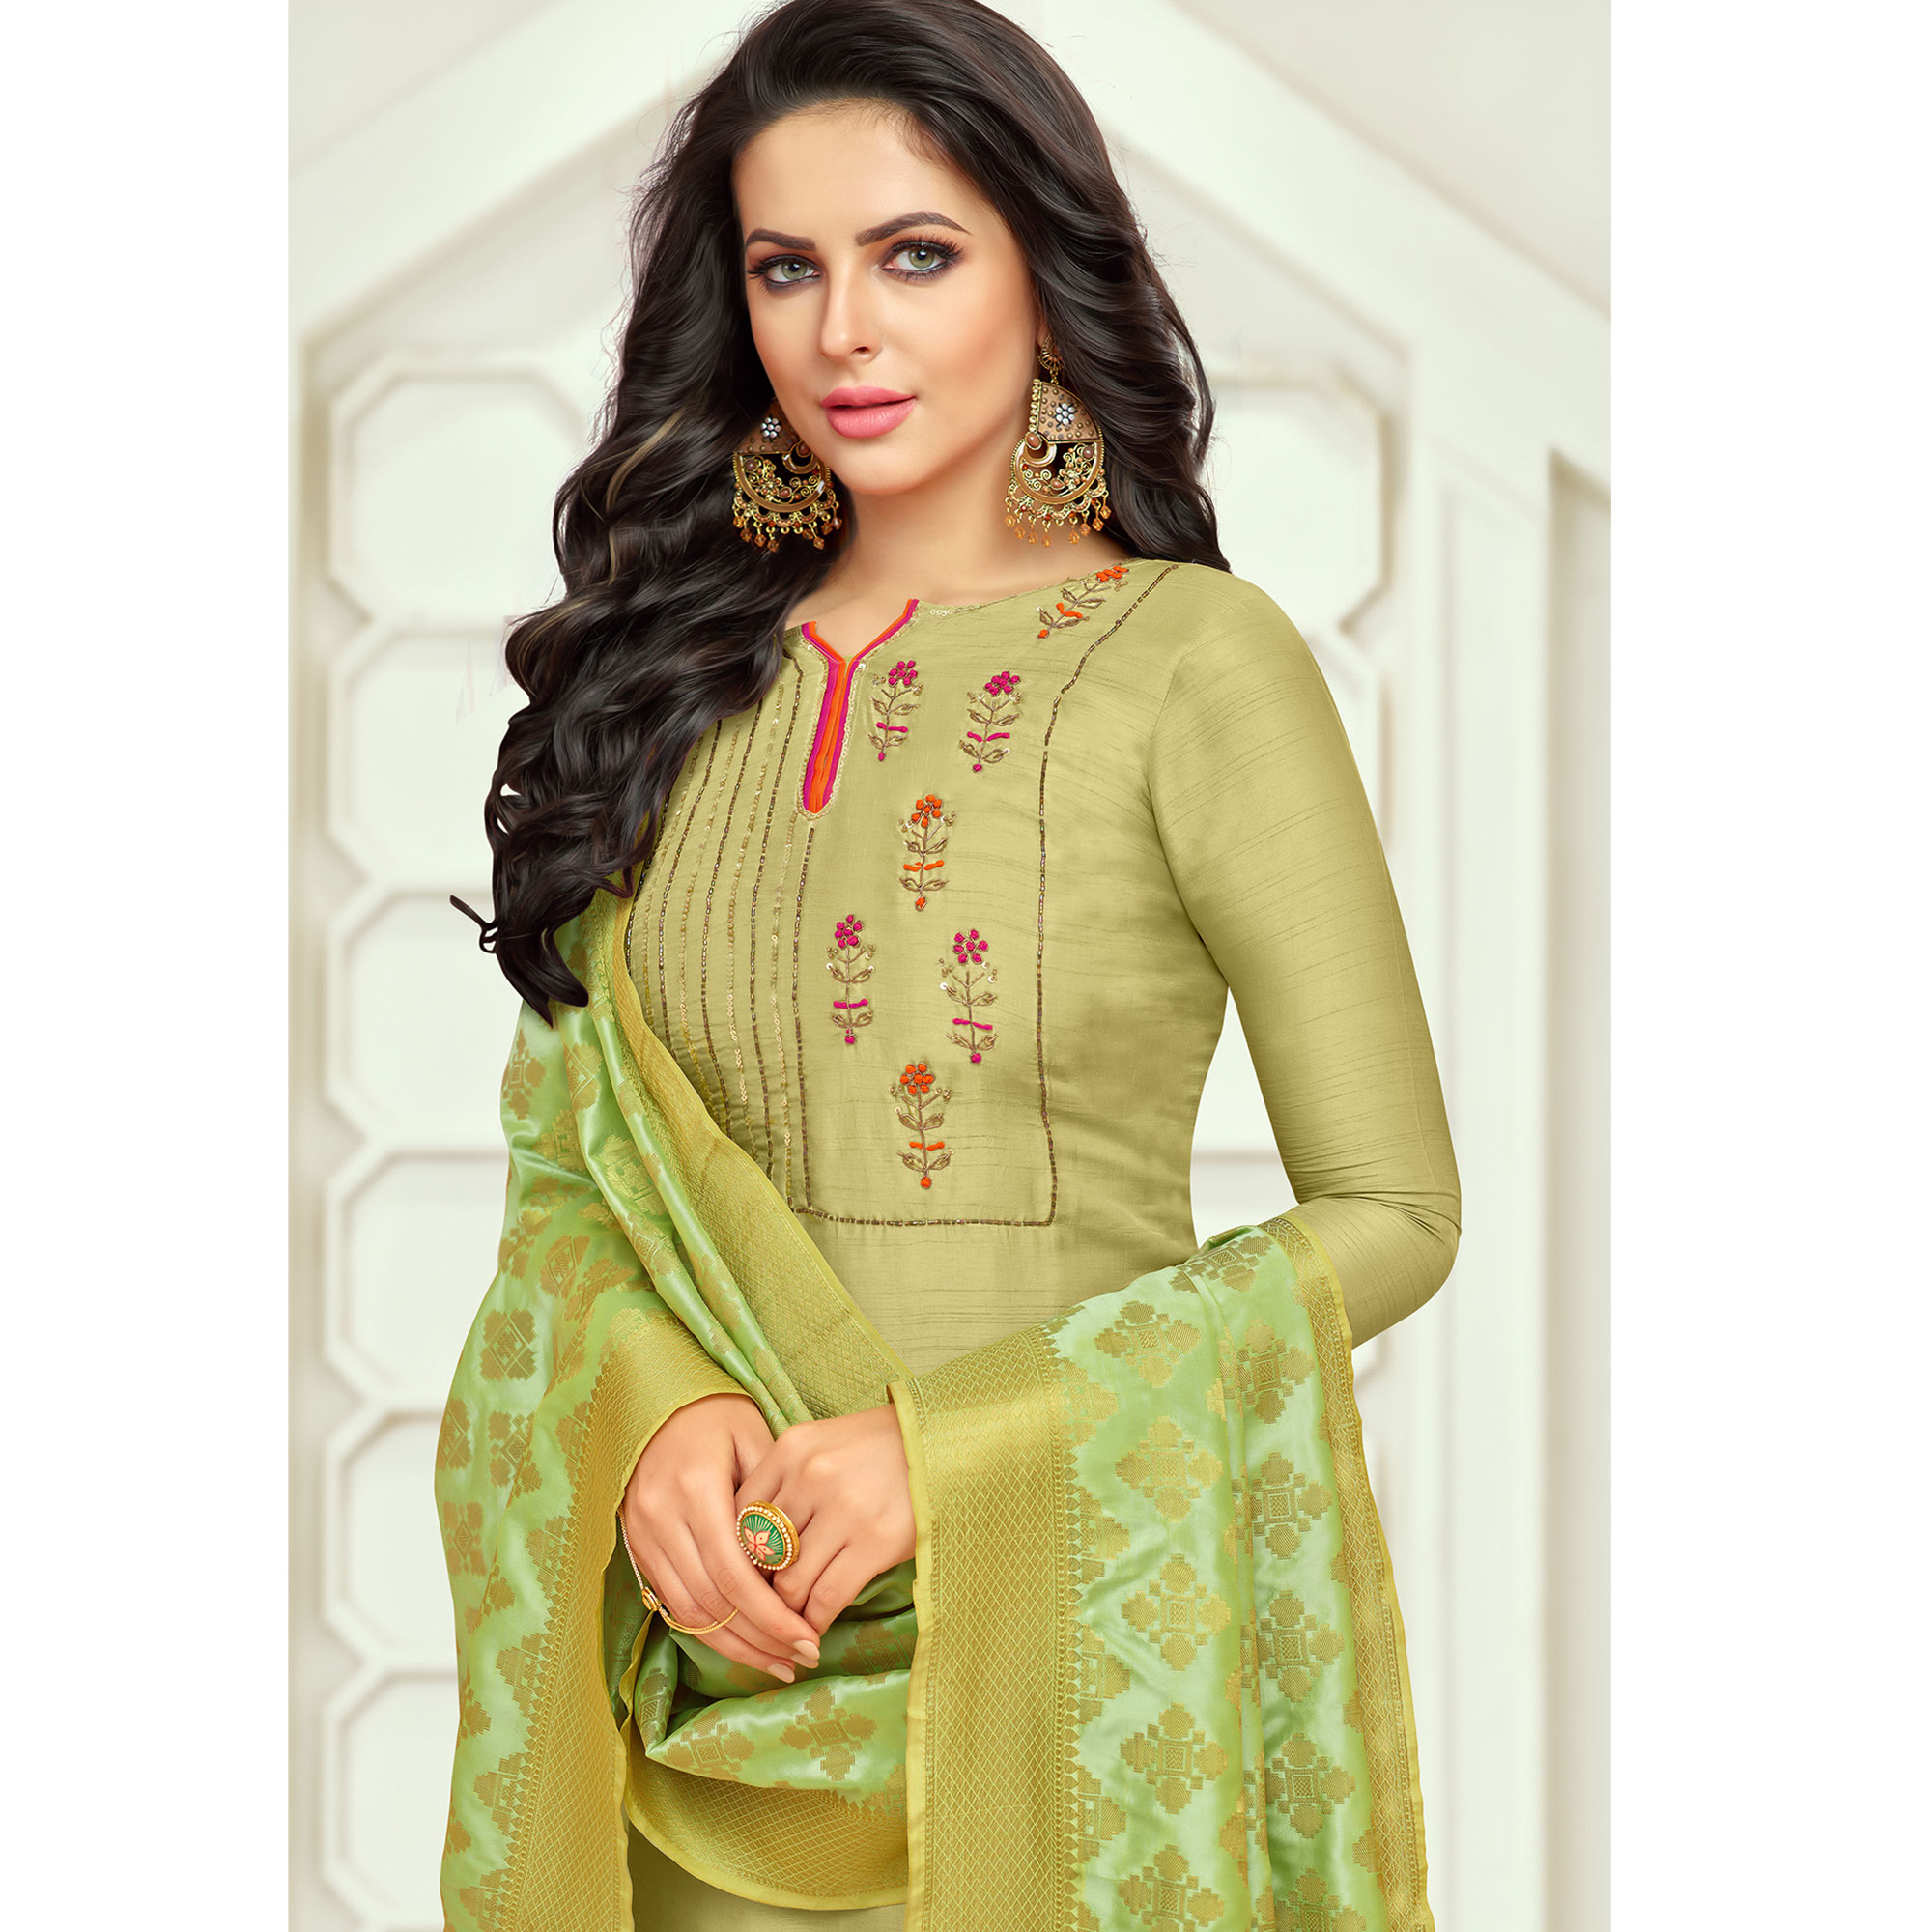 Engrossing Pear Green Colored Embroidered Party Wear Silk Salwar Suit